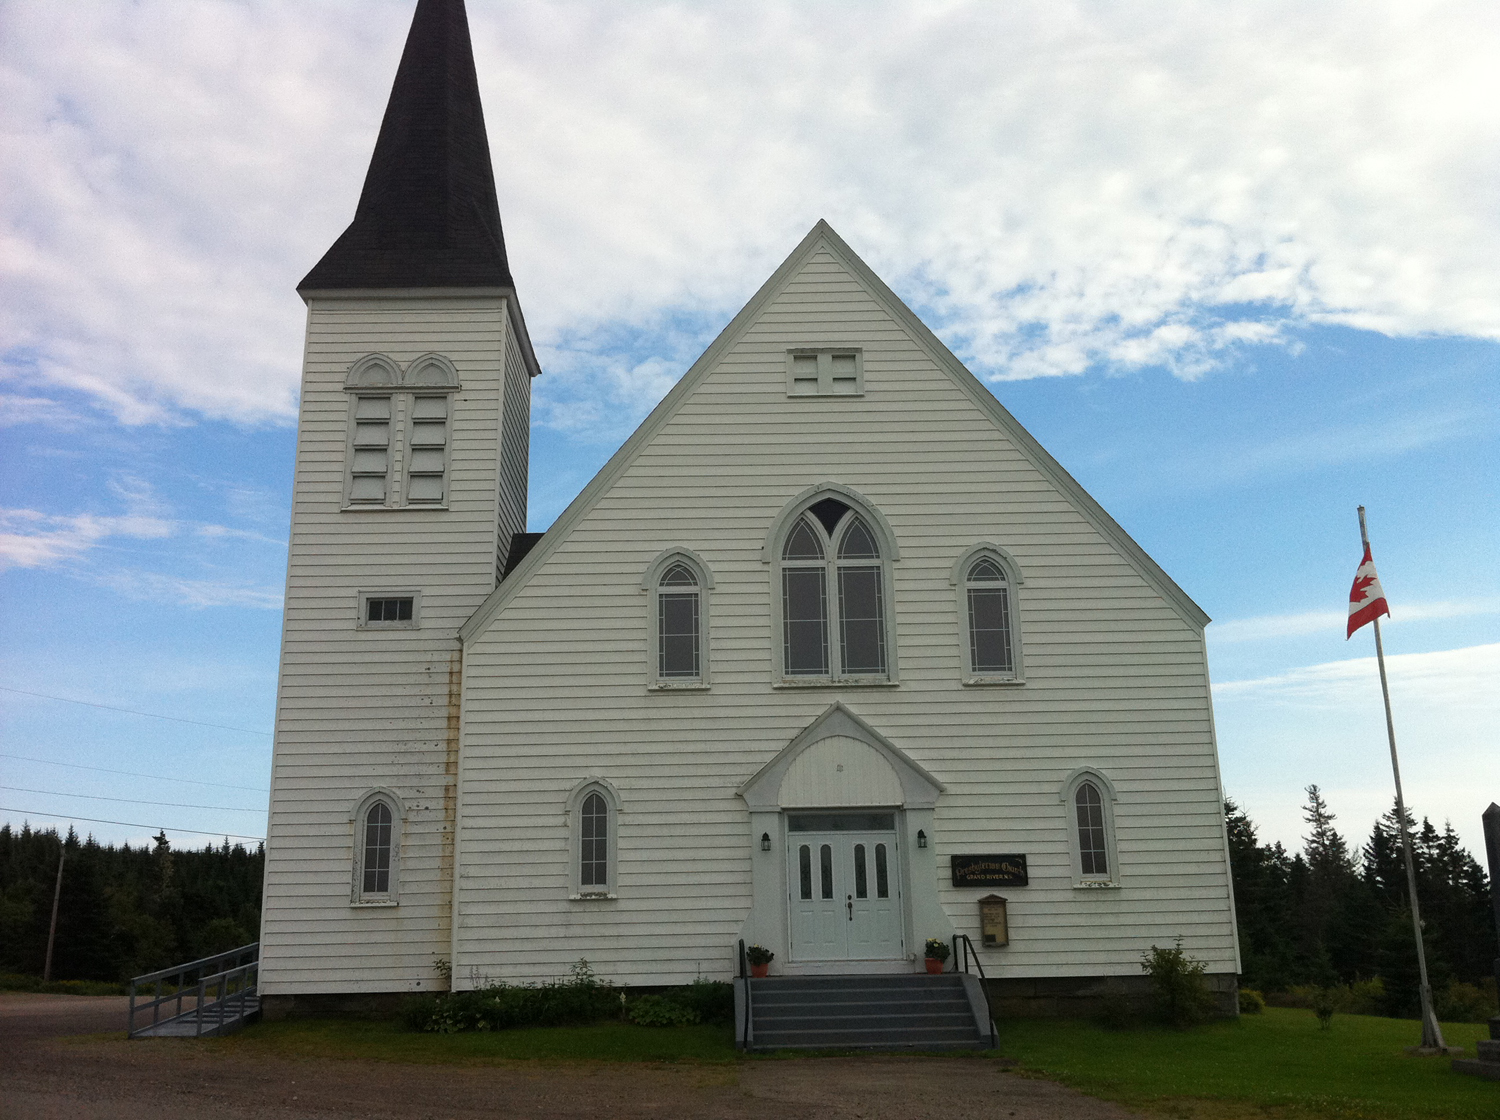 No Description set